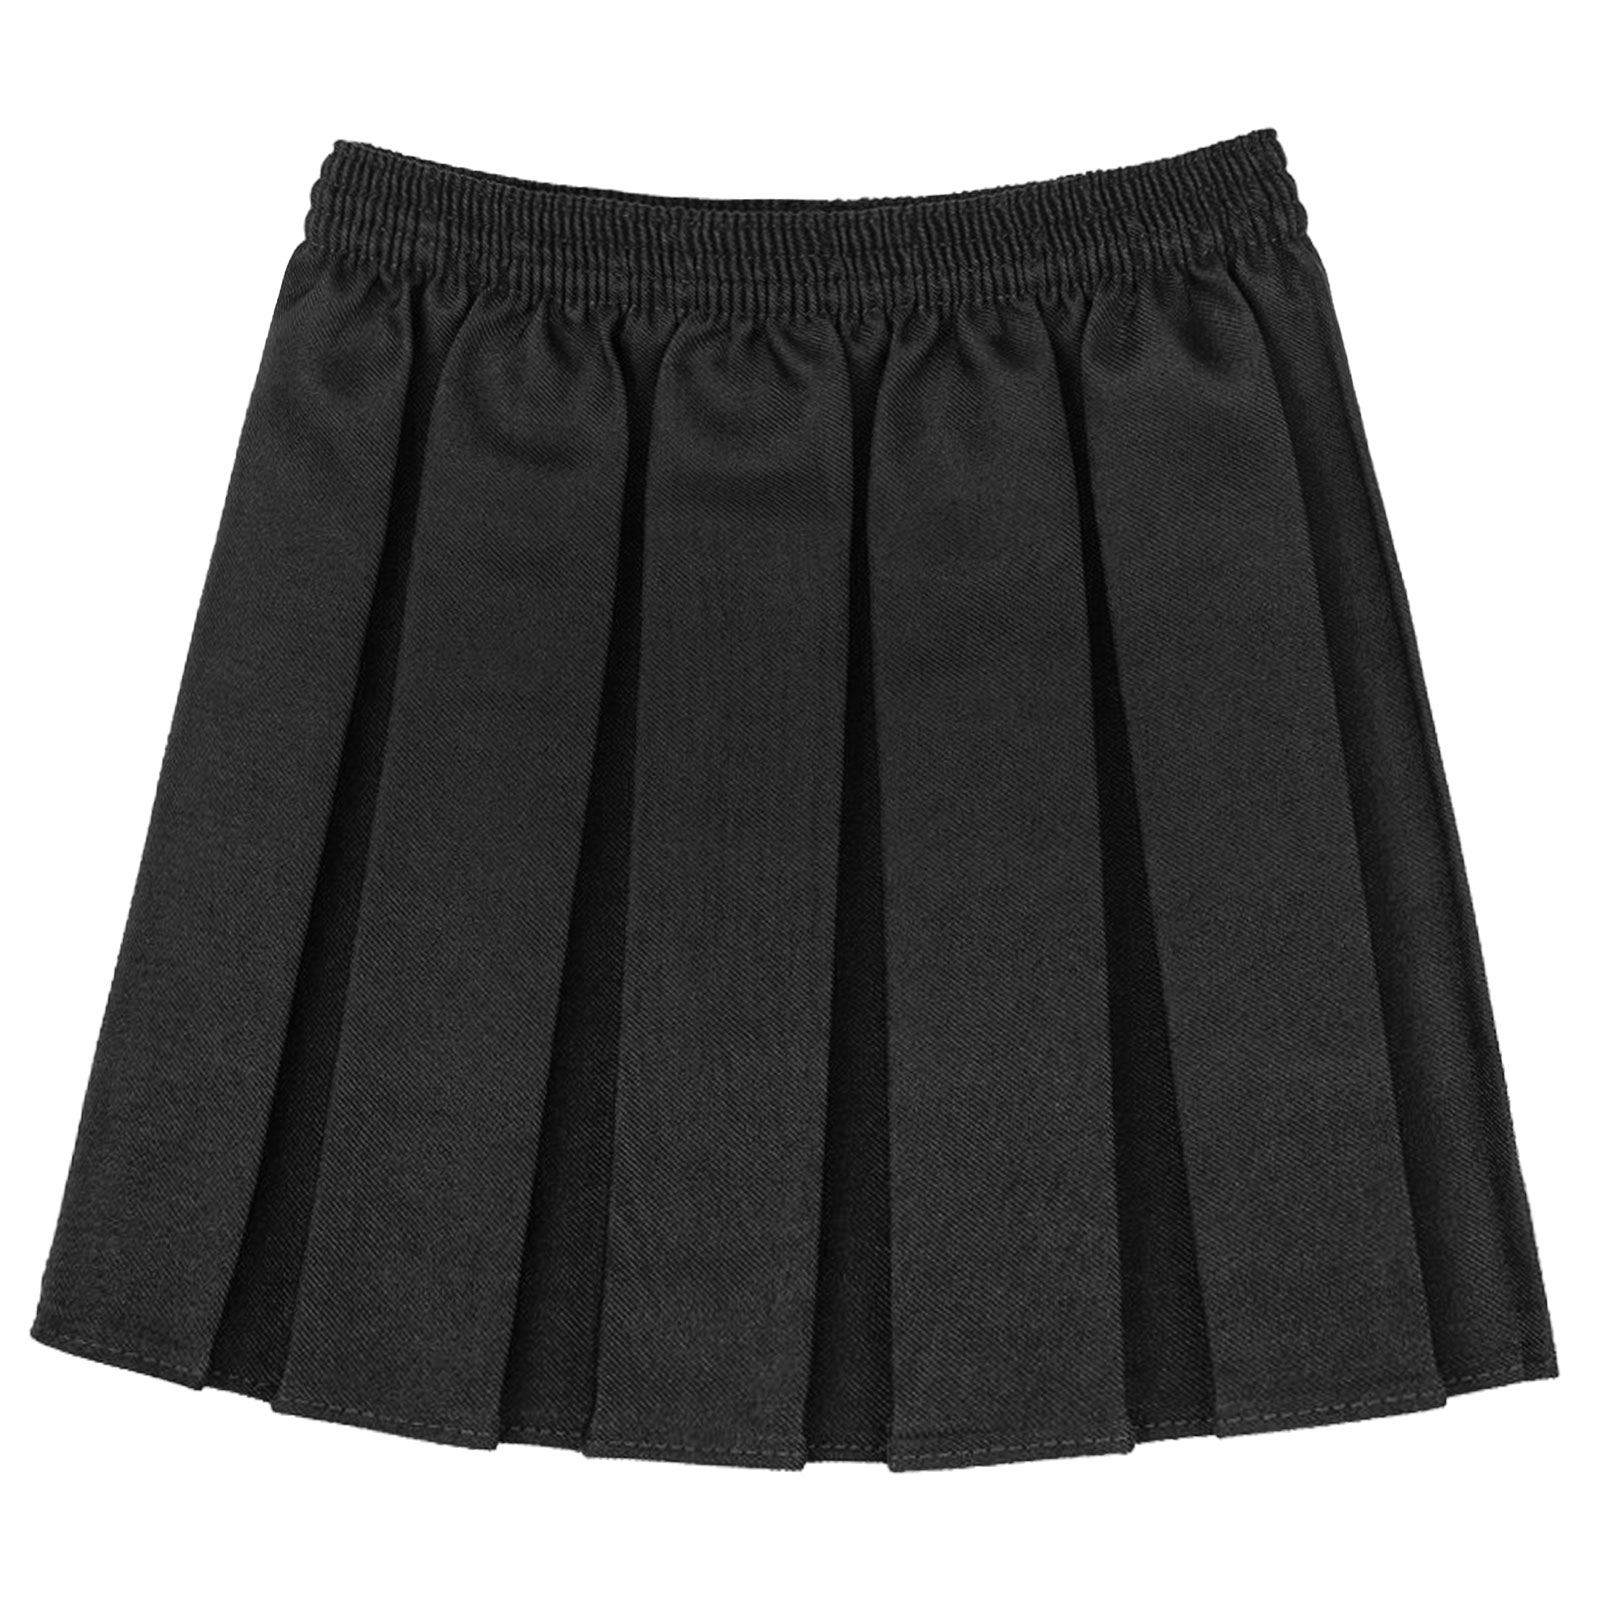 Shop for navy pleated uniform skirt online at Target. Free shipping on purchases over $35 and save 5% every day with your Target REDcard.